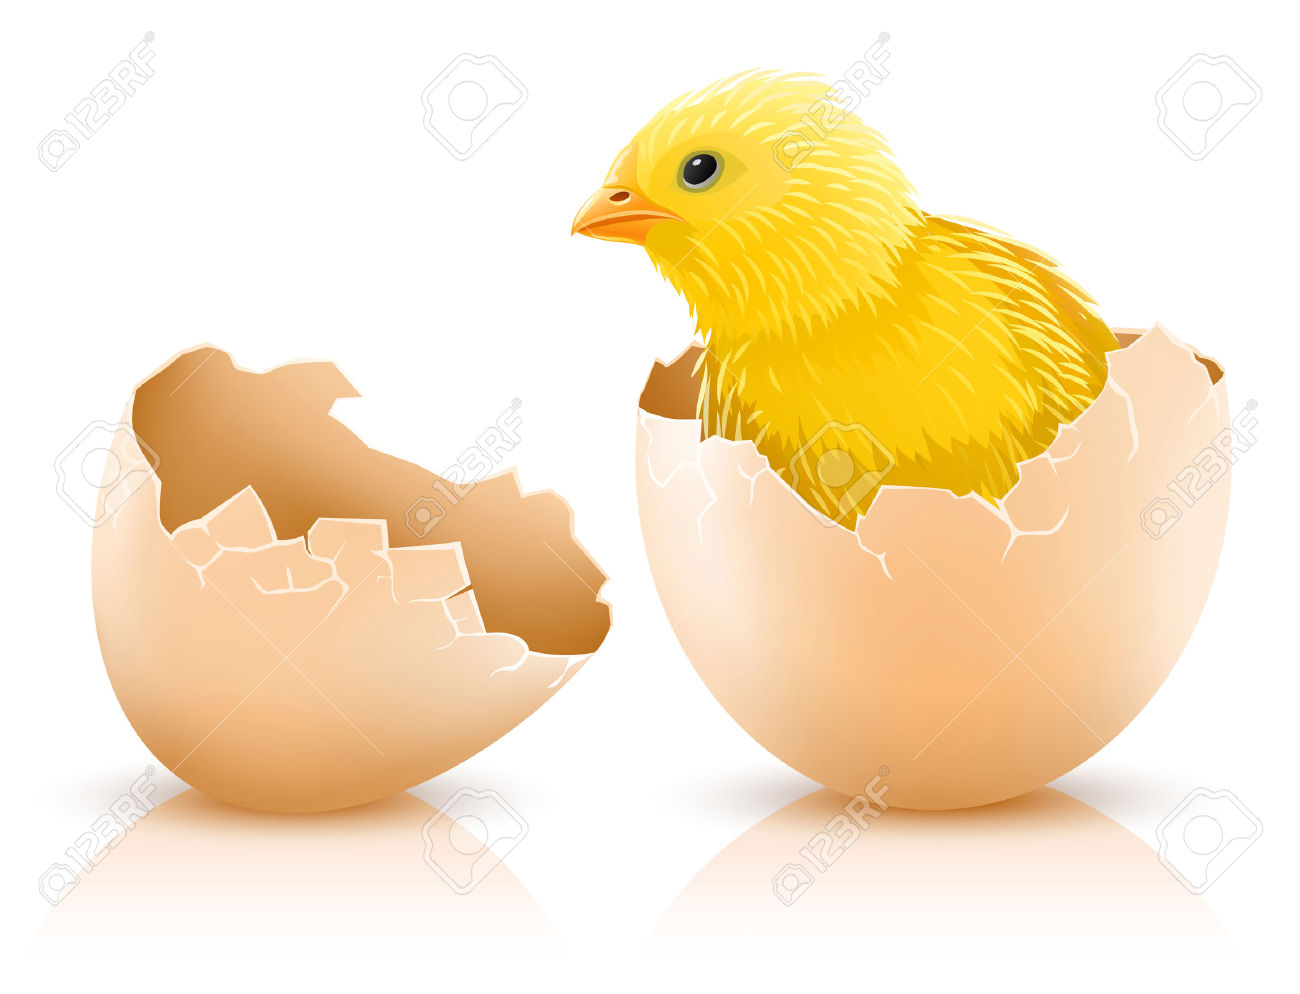 Chicken Egg Quote: Chicken Comes Out Form Cracked Egg Funny Picture For Whatsapp